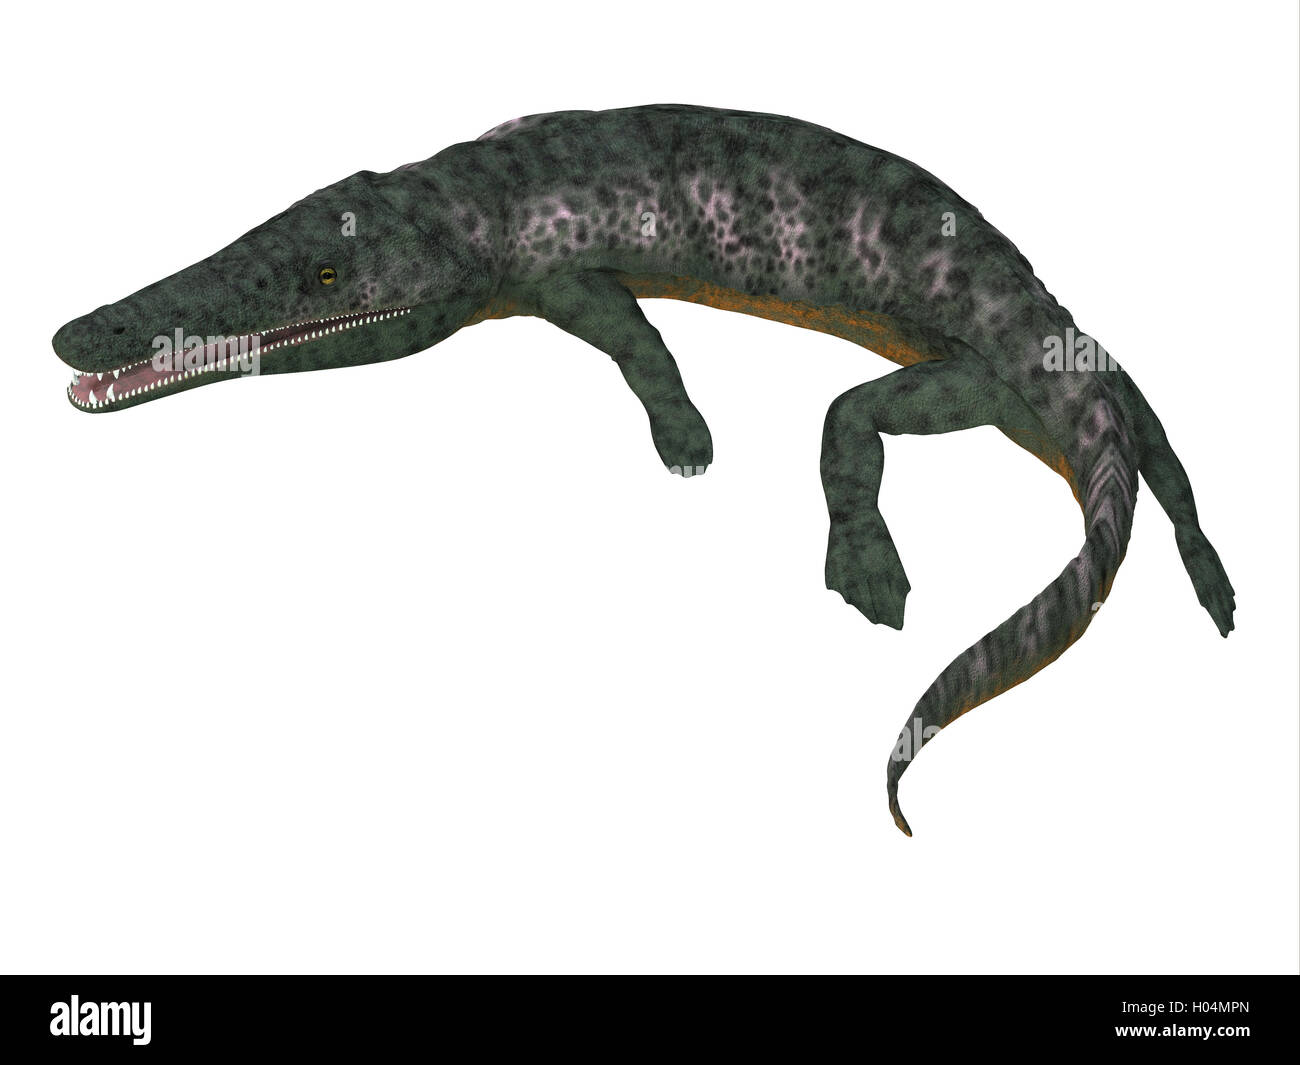 Archegosaurus was an amphibian tetrapod that lived in Europe during the Permian Period. - Stock Image